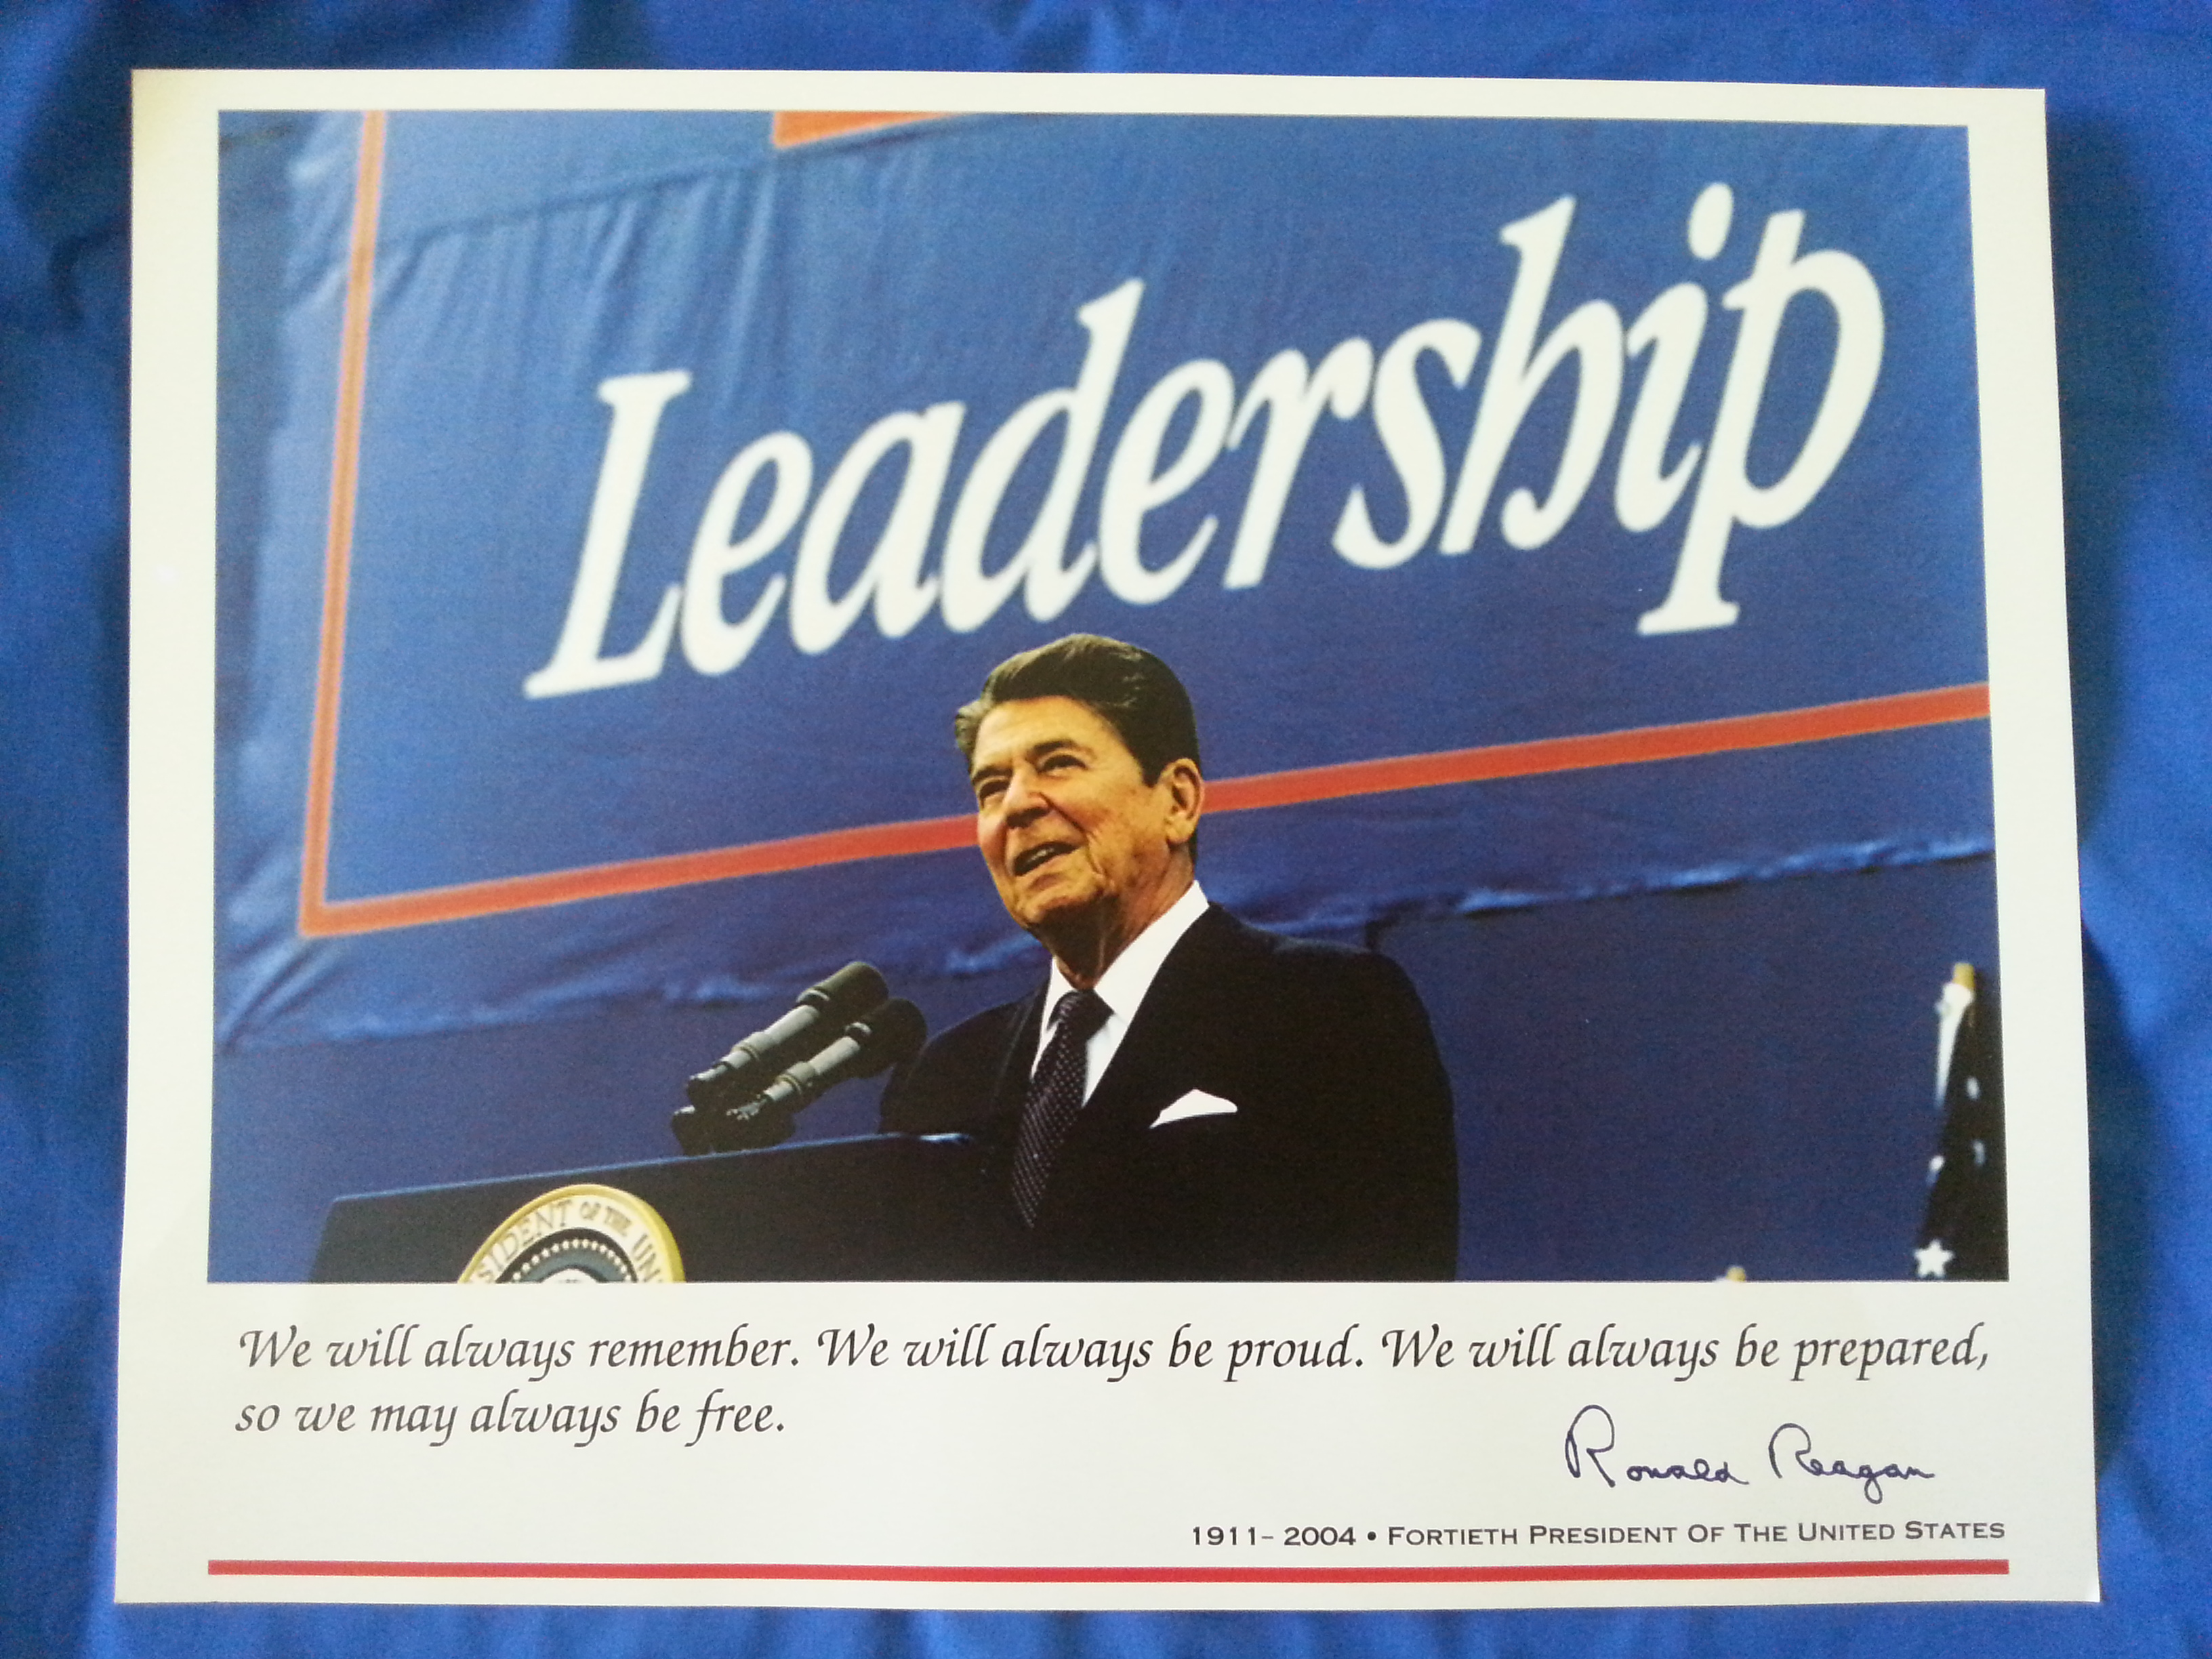 ronald reagan leadership essays Ronald reagan ronald reagan's actions during his presidency term from 1981 to 1989 represent many of the traits that i feel make an effective leader as.